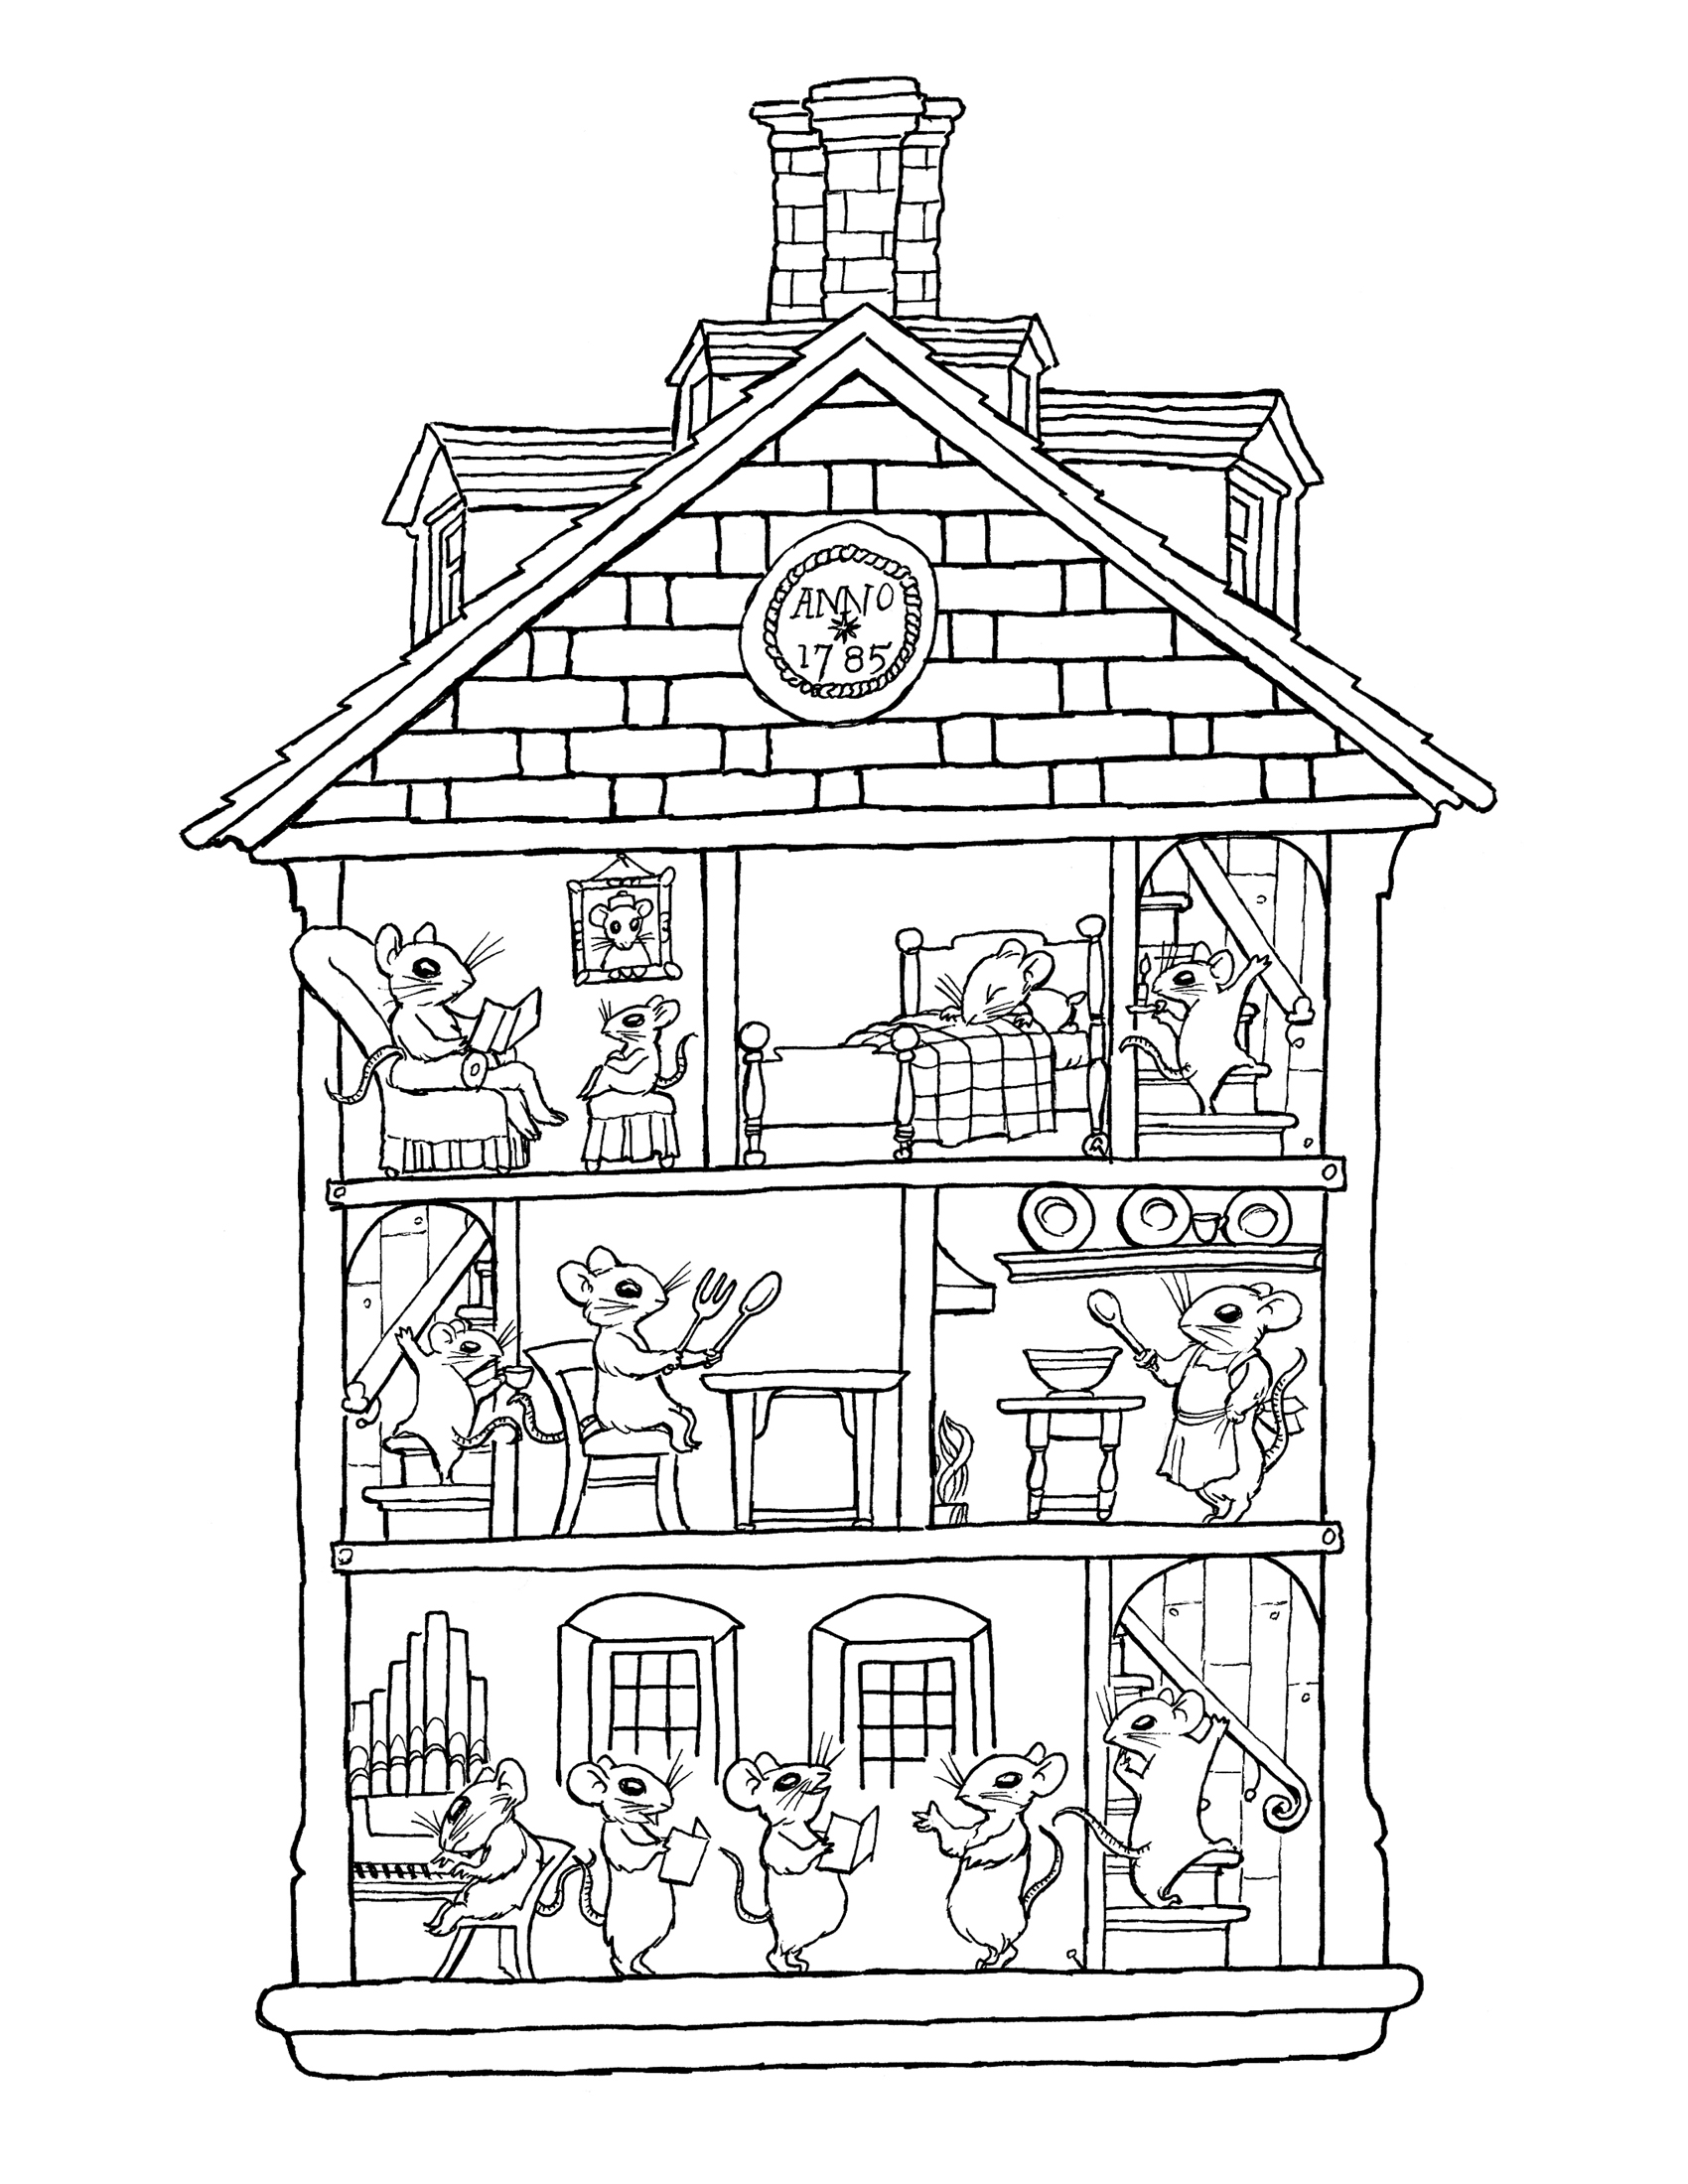 Coloring Pages House Rooms - Google Twit